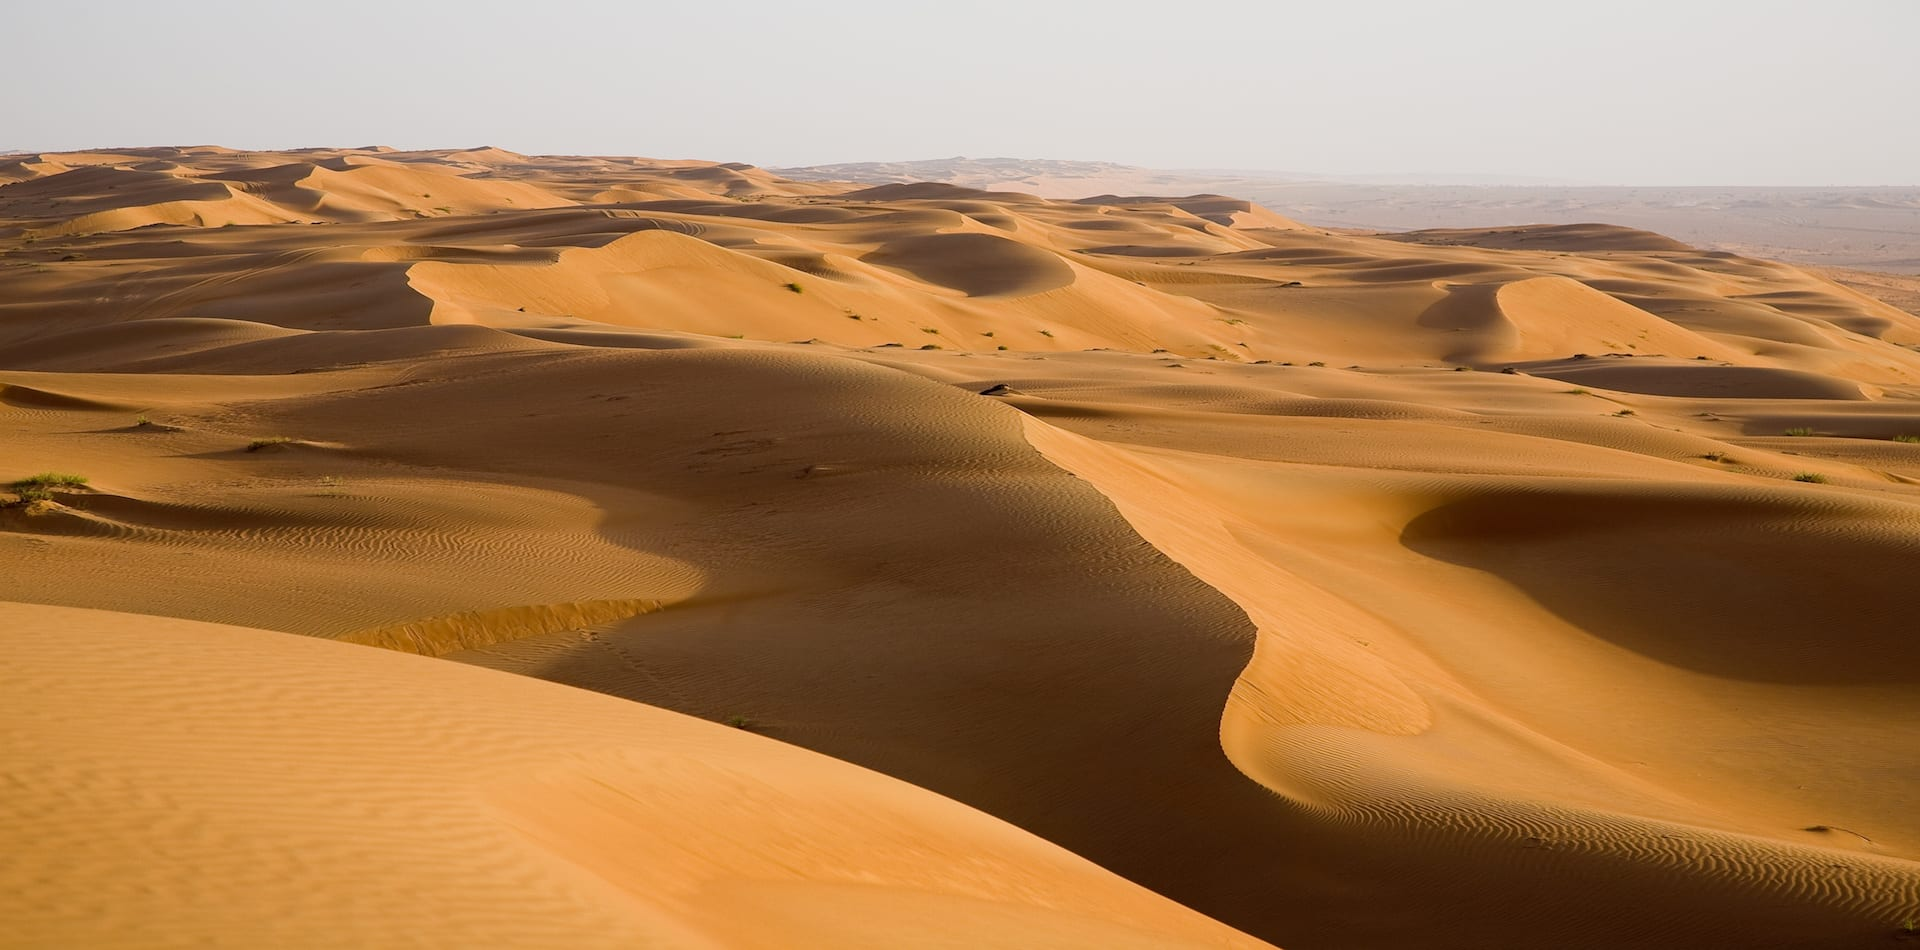 Sand dunes for miles